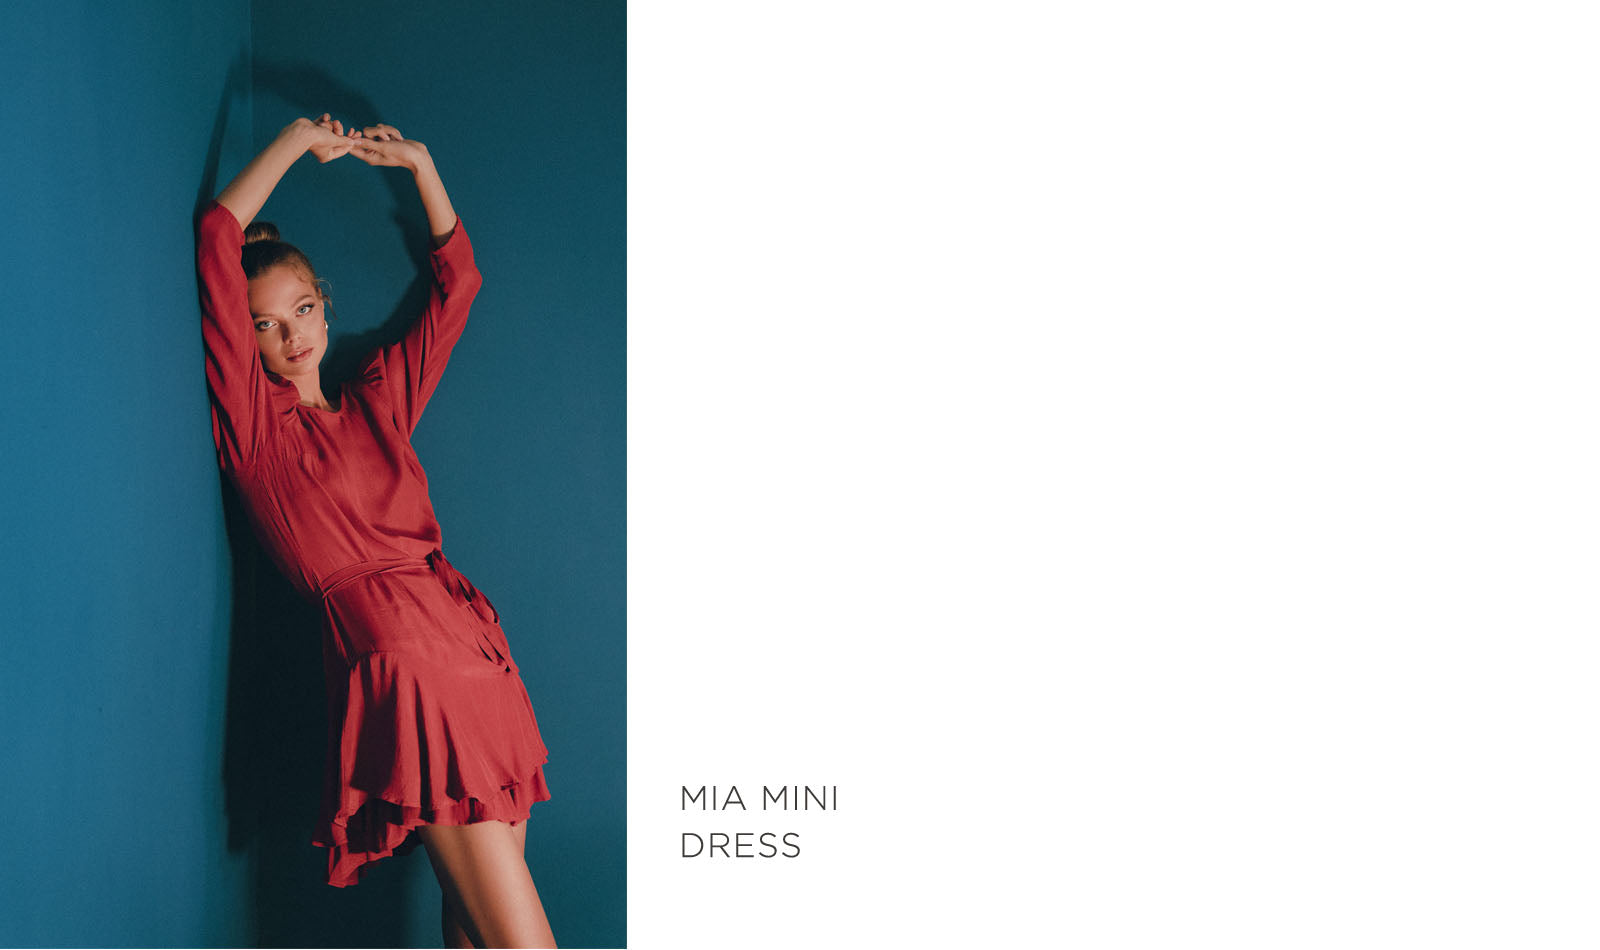 mia mini dress in guava color